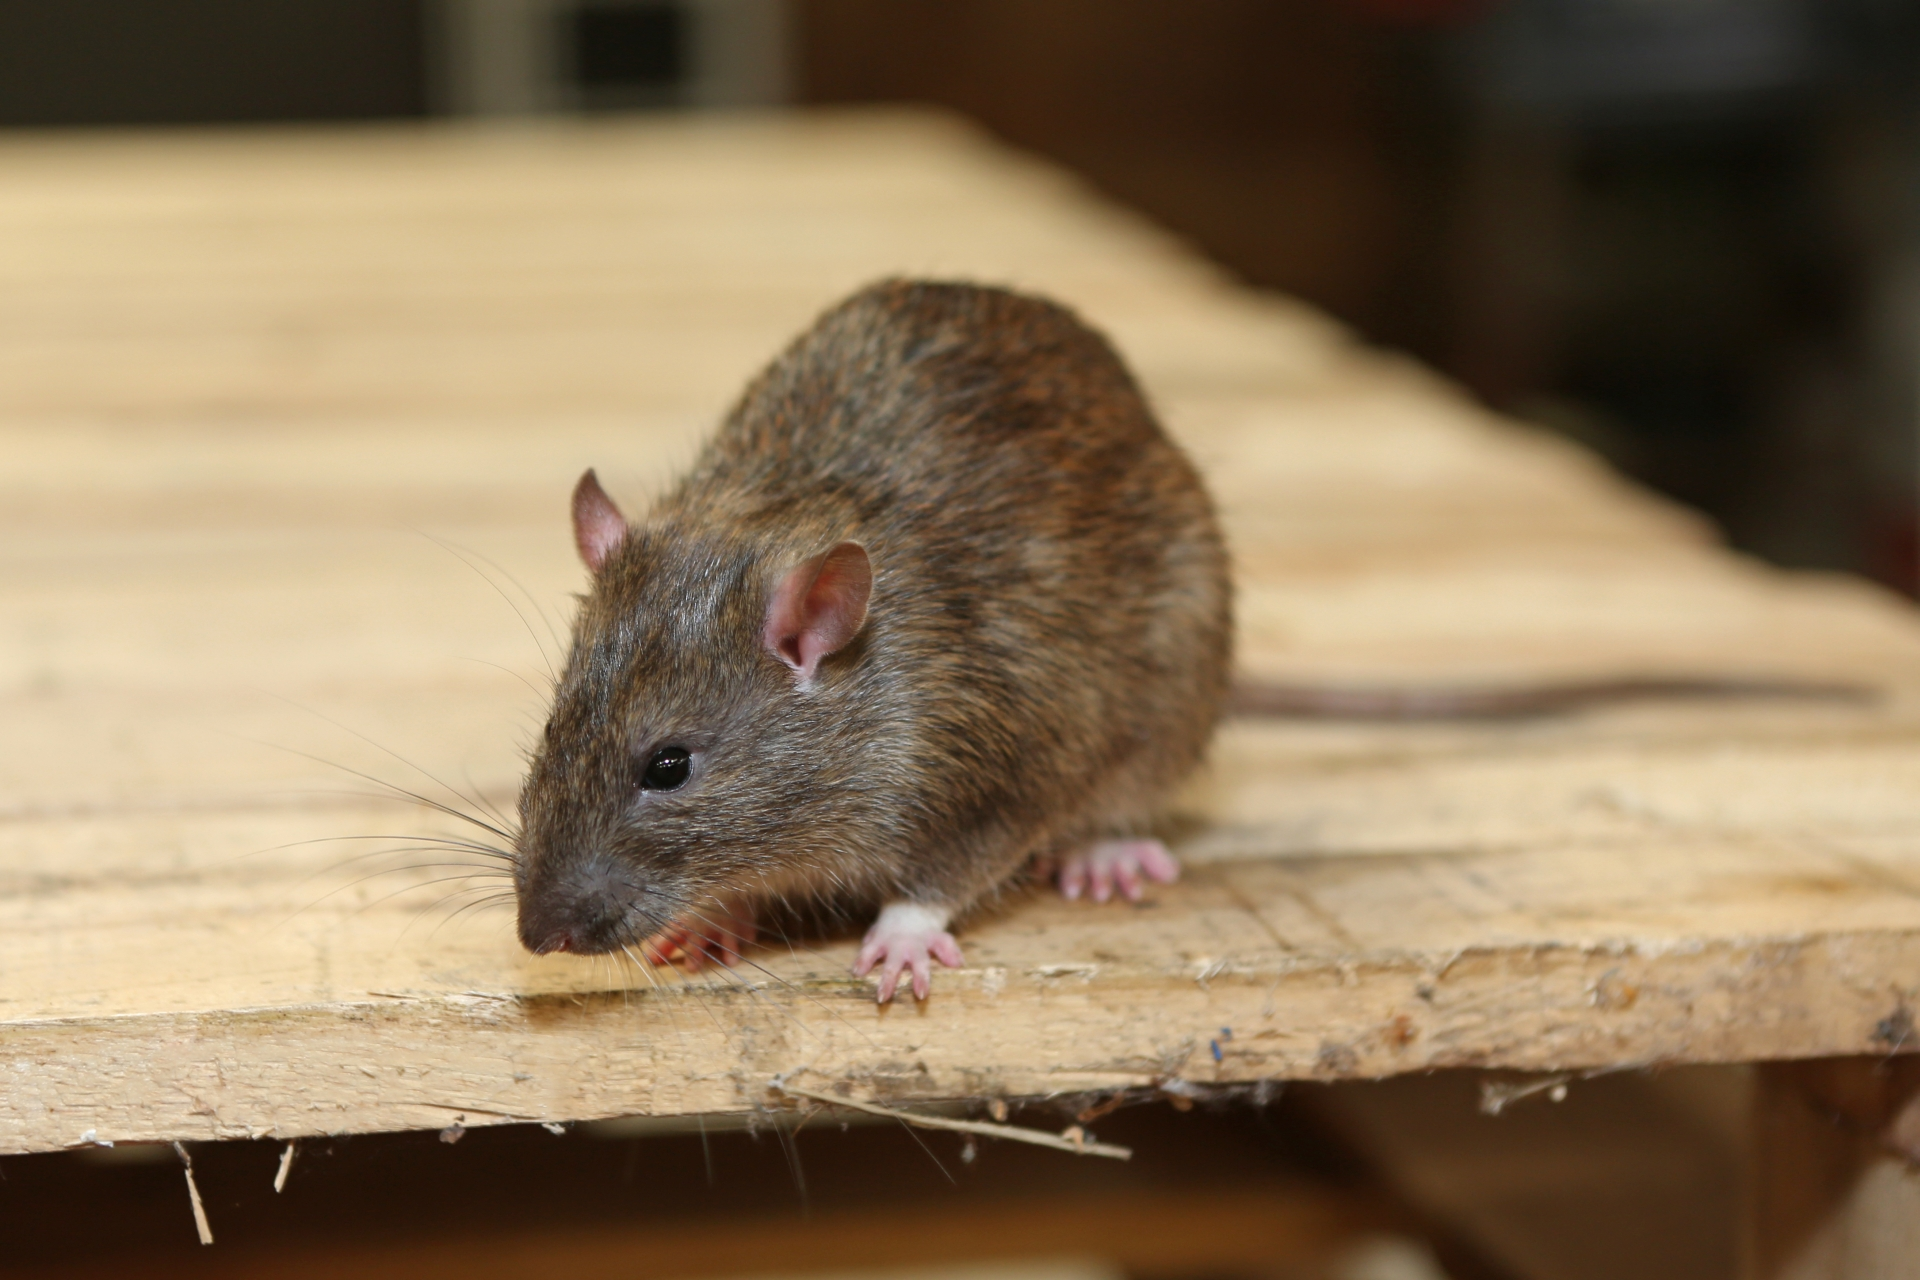 Rat Infestation, Pest Control in Plumstead, SE18. Call Now 020 8166 9746